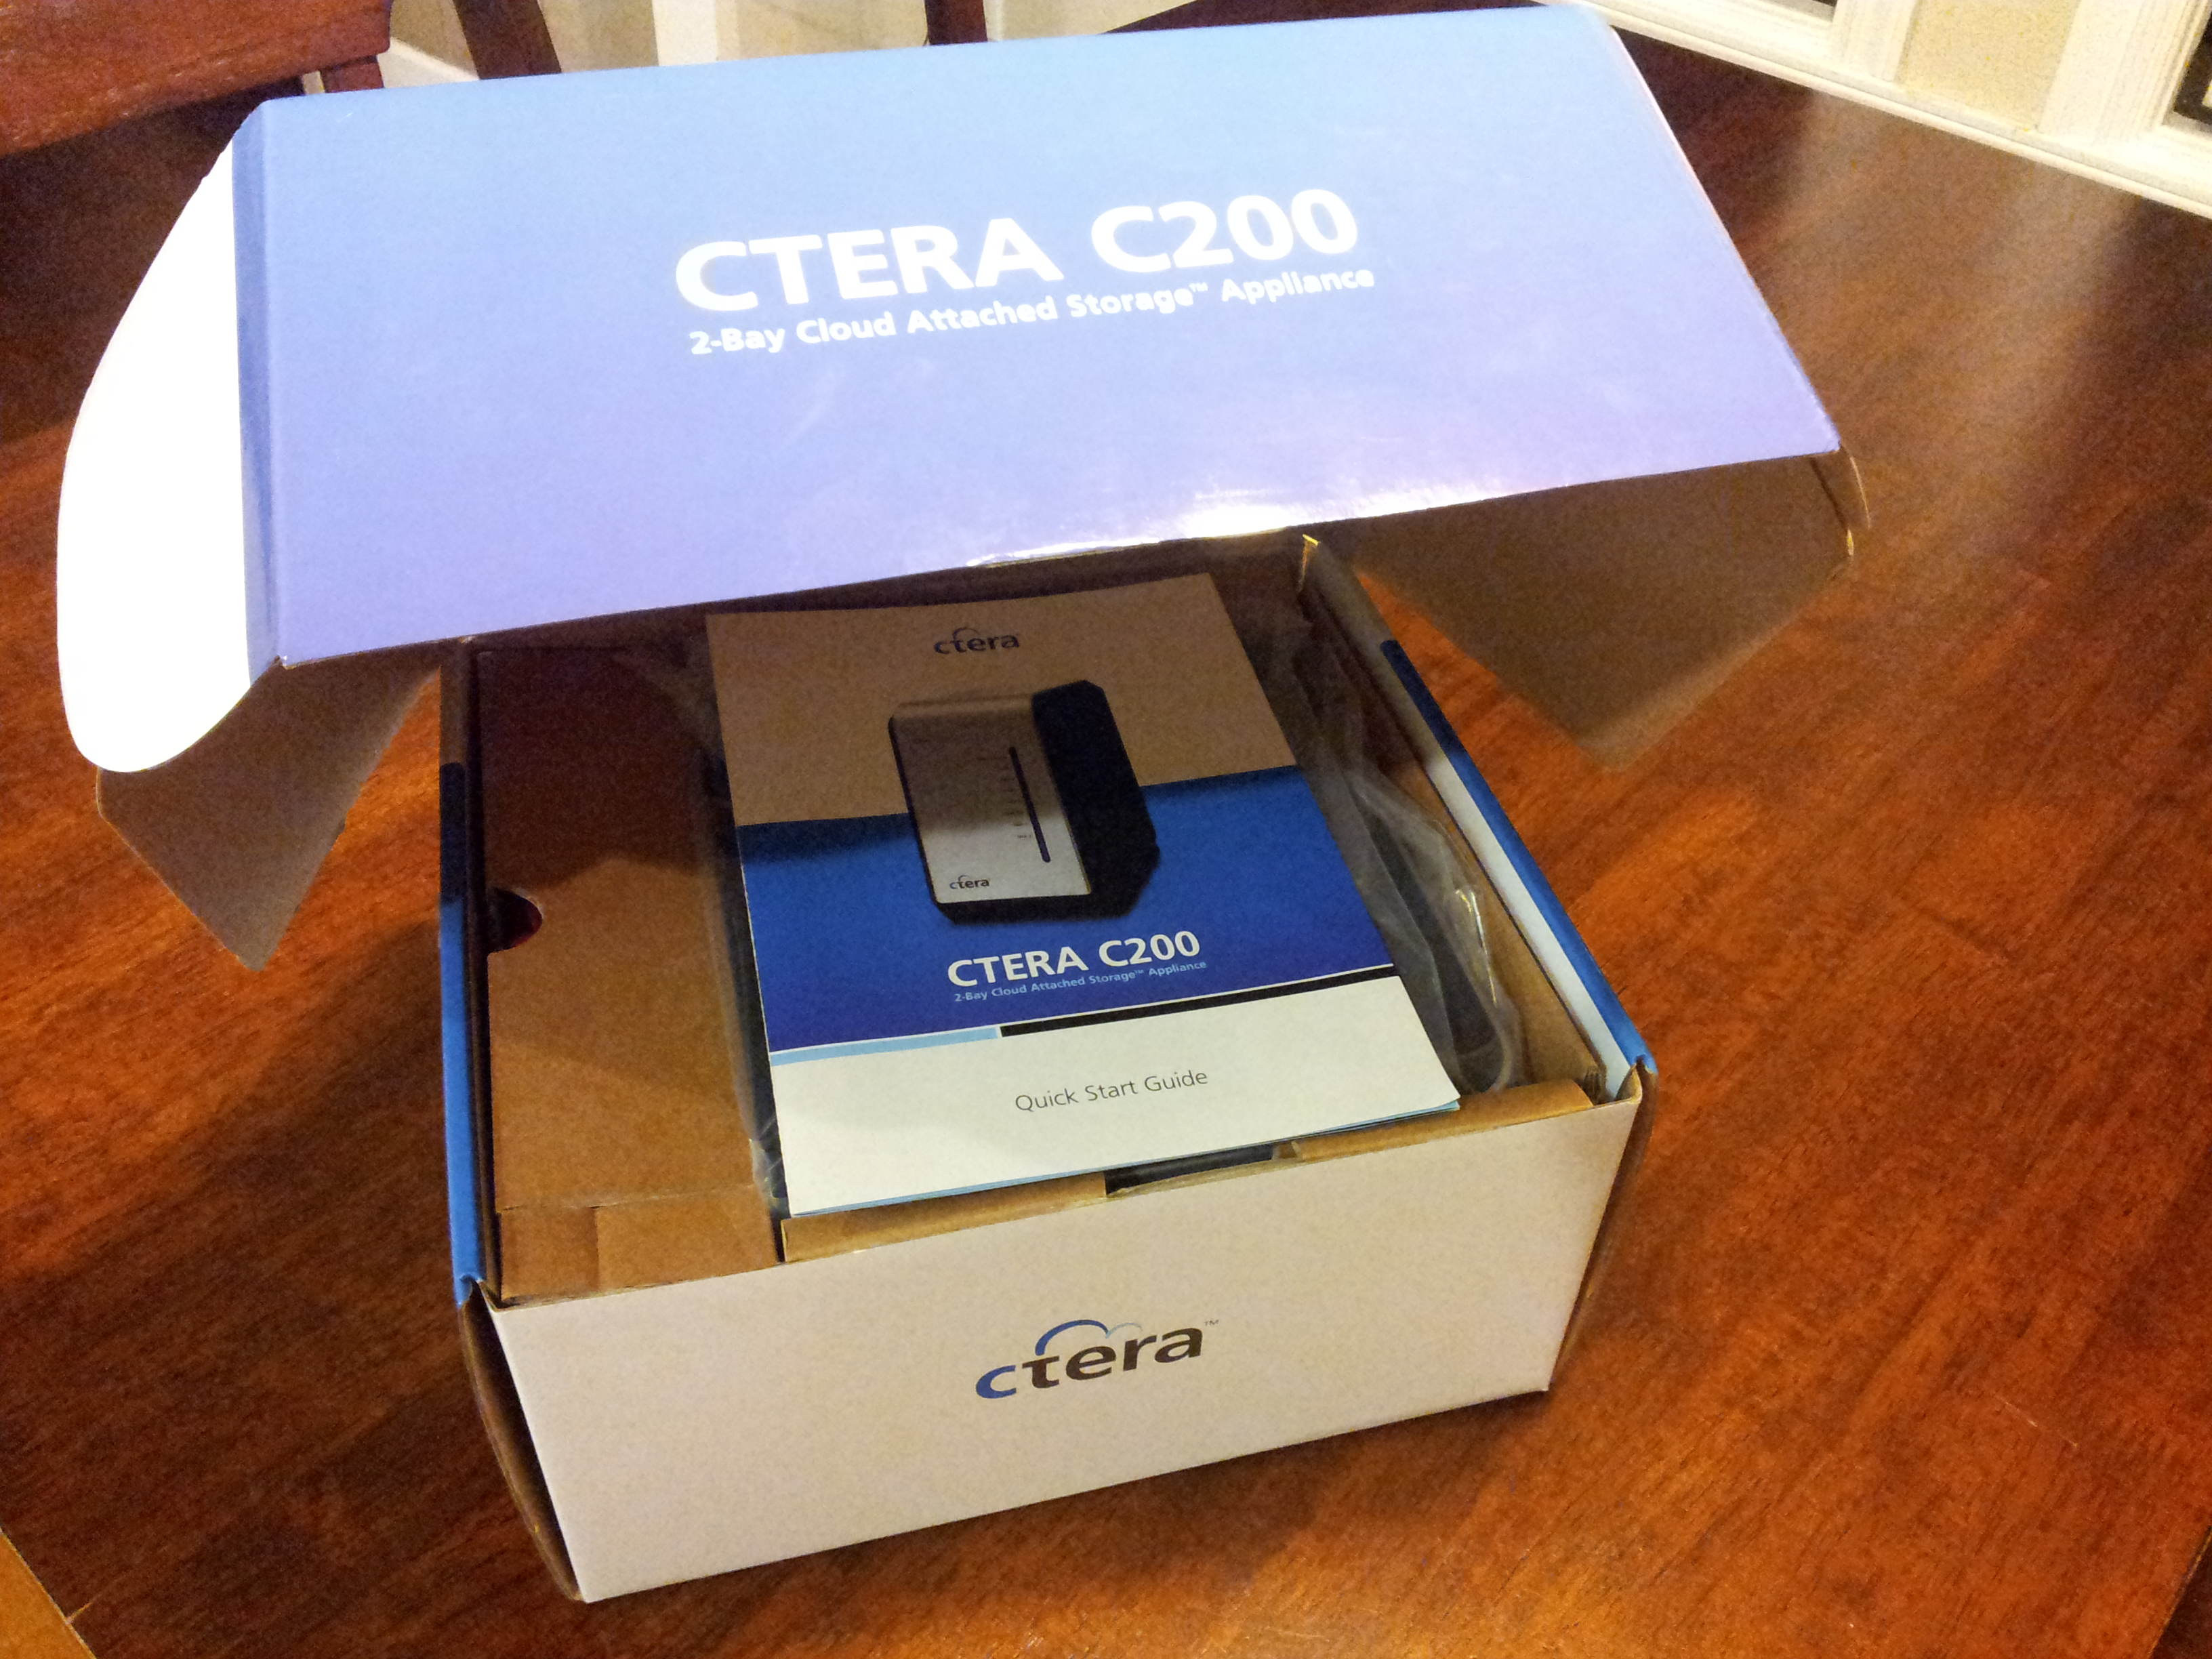 CTERA-C200-C400-C800-CloudPlug-Review-Half-Opened-Box-with-Quck-Start-Guide